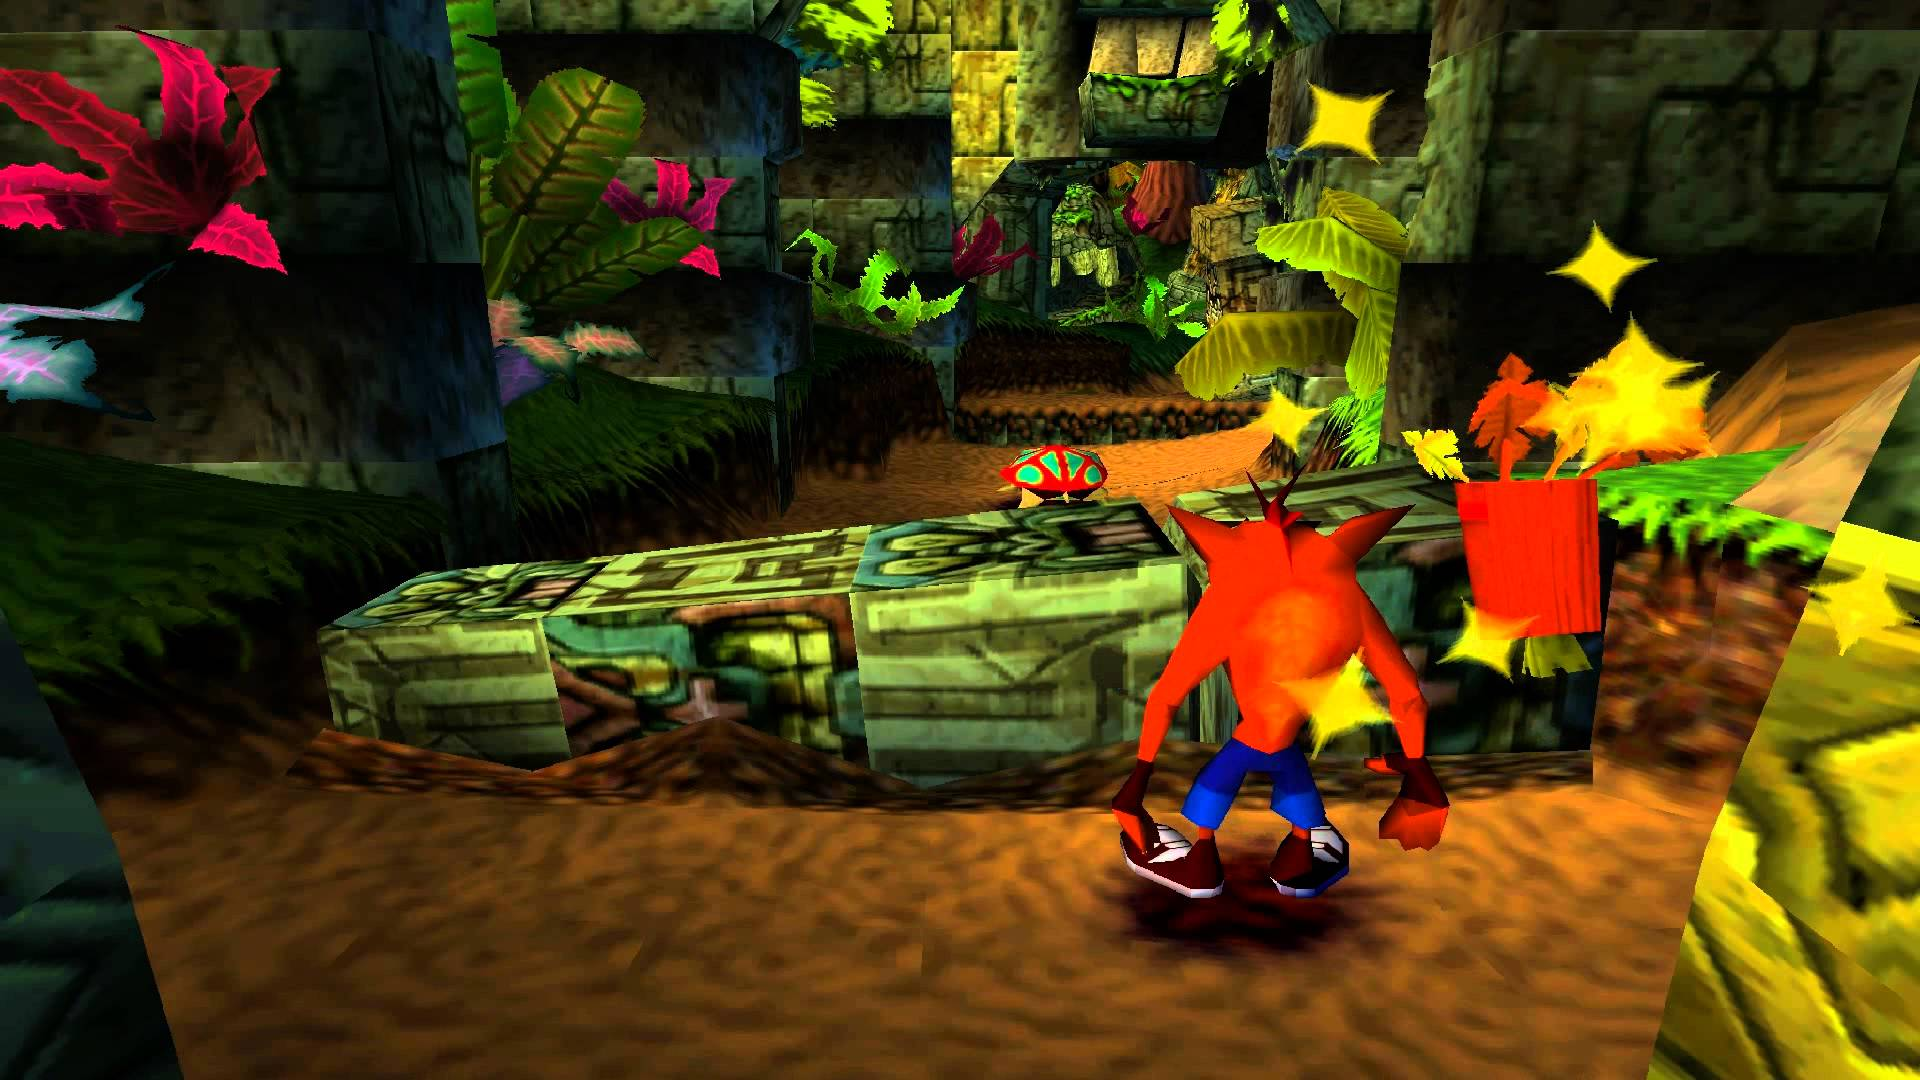 Crash Game Toy : What happened to crash bandicoot remake coming soon